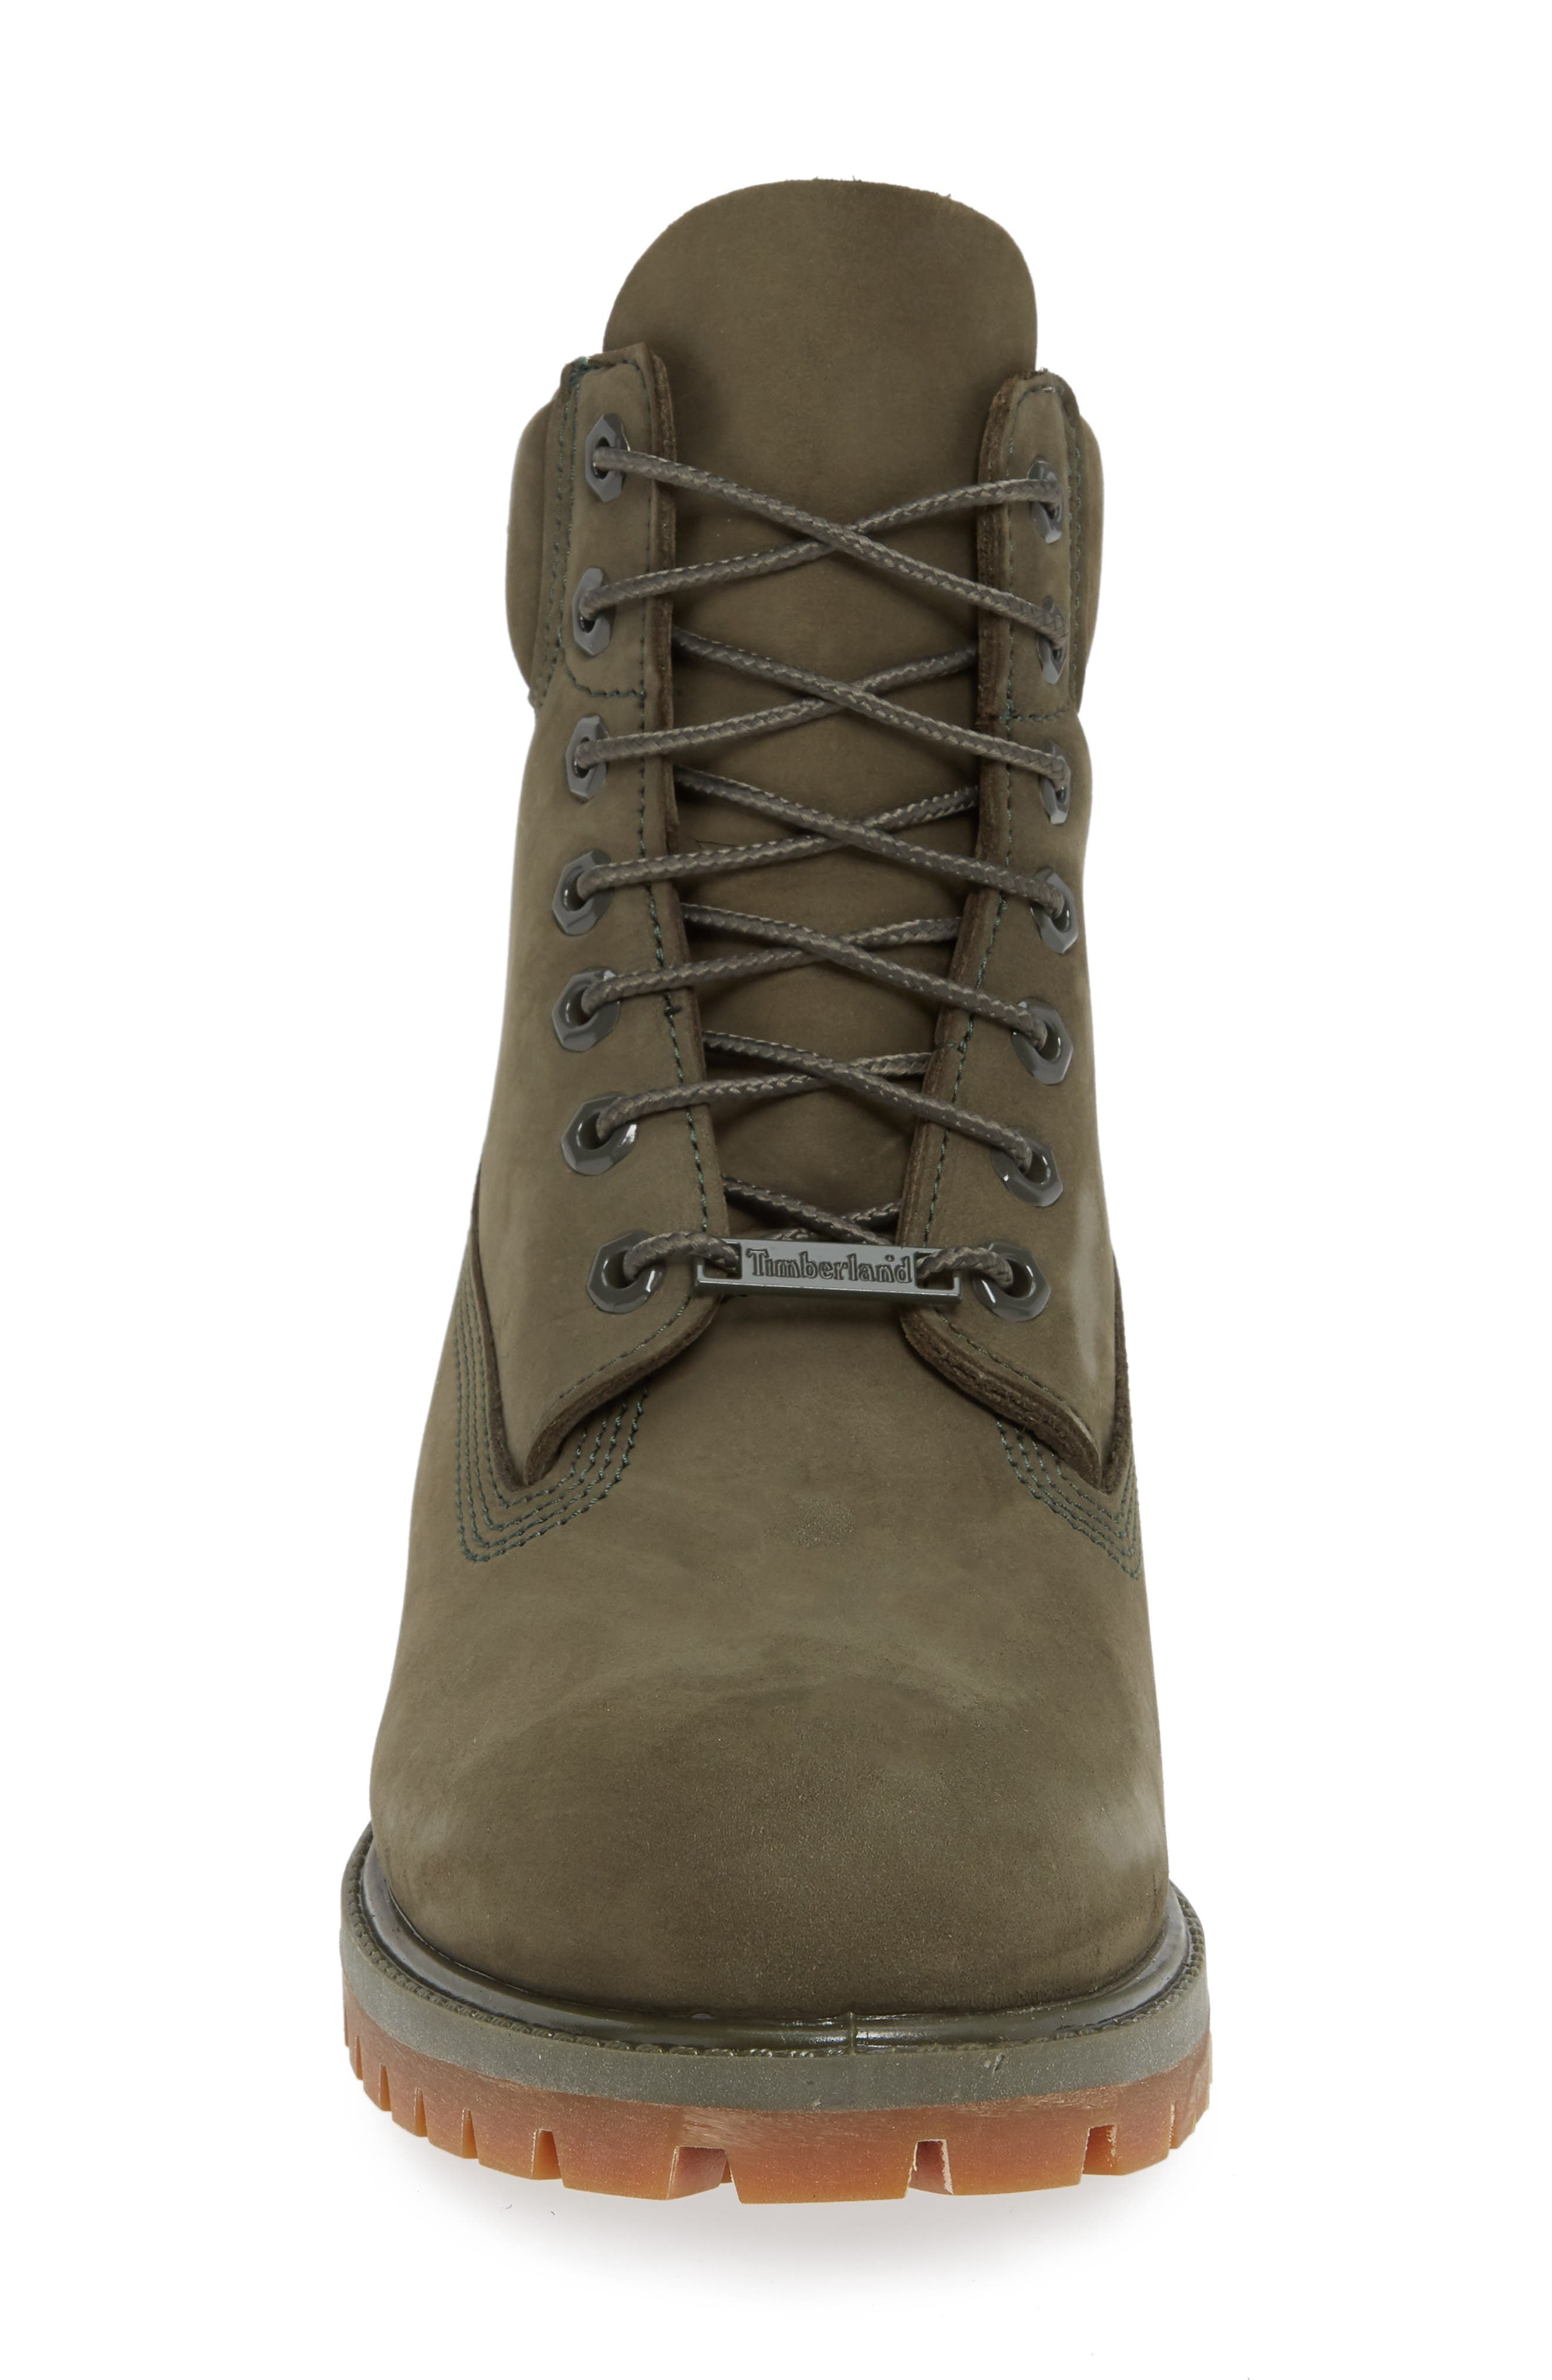 Six Inch Classic Waterproof Boots Series - Premium Waterproof Boot,                             Alternate thumbnail 4, color,                             GRAPE LEAF LEATHER